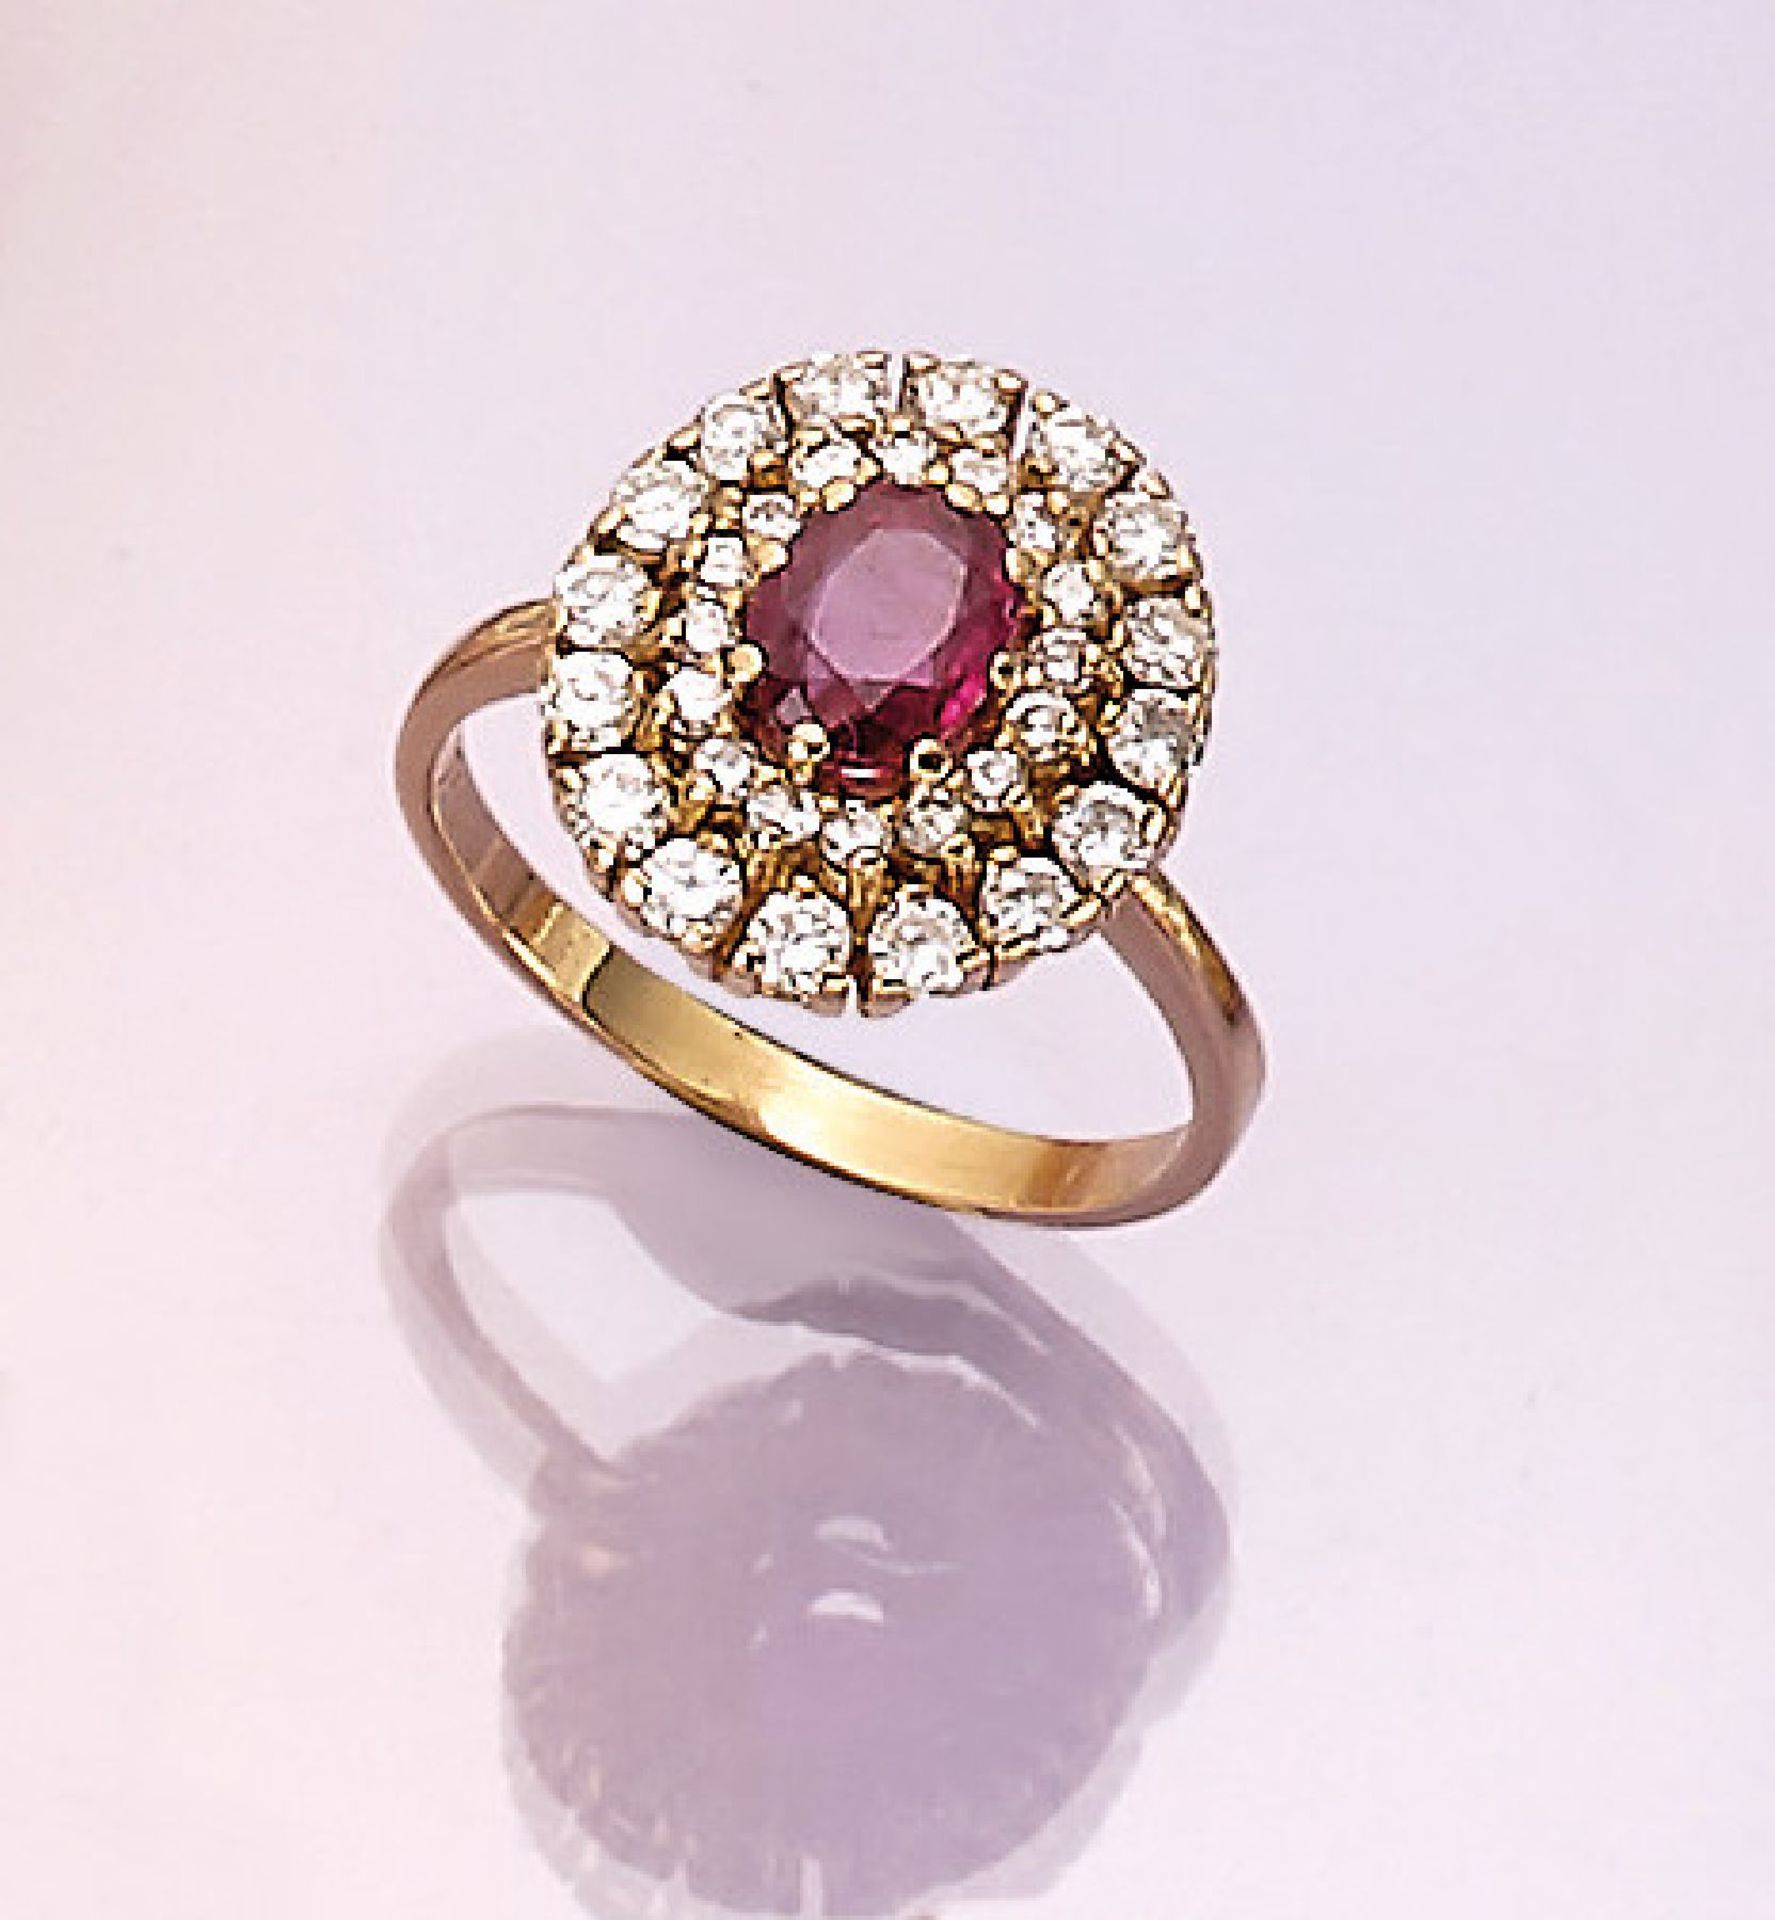 Los 31508 - 18 kt gold ring with ruby and brilliants , YG 750/000, oval bevelled ruby approx. 1.05 ct, 30